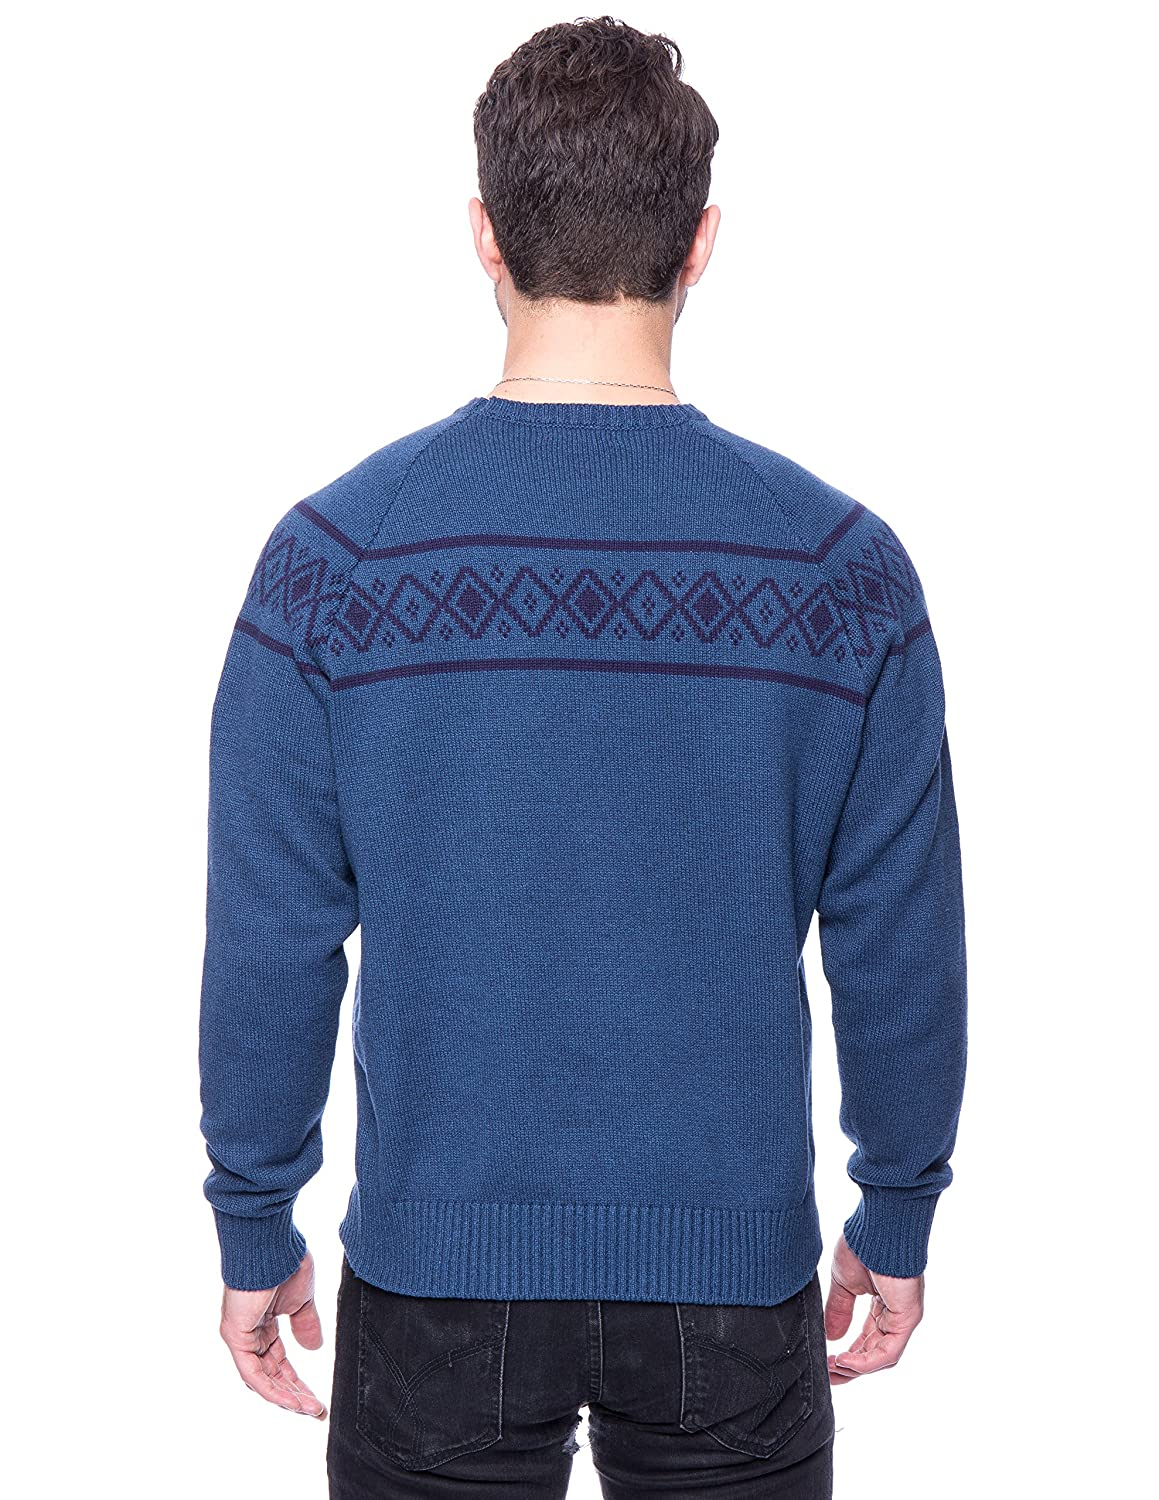 Noble Mount Tocco Reale Gift Packaged Mens 100/% Cotton Crew Neck Sweater with Fair Isle Stripe